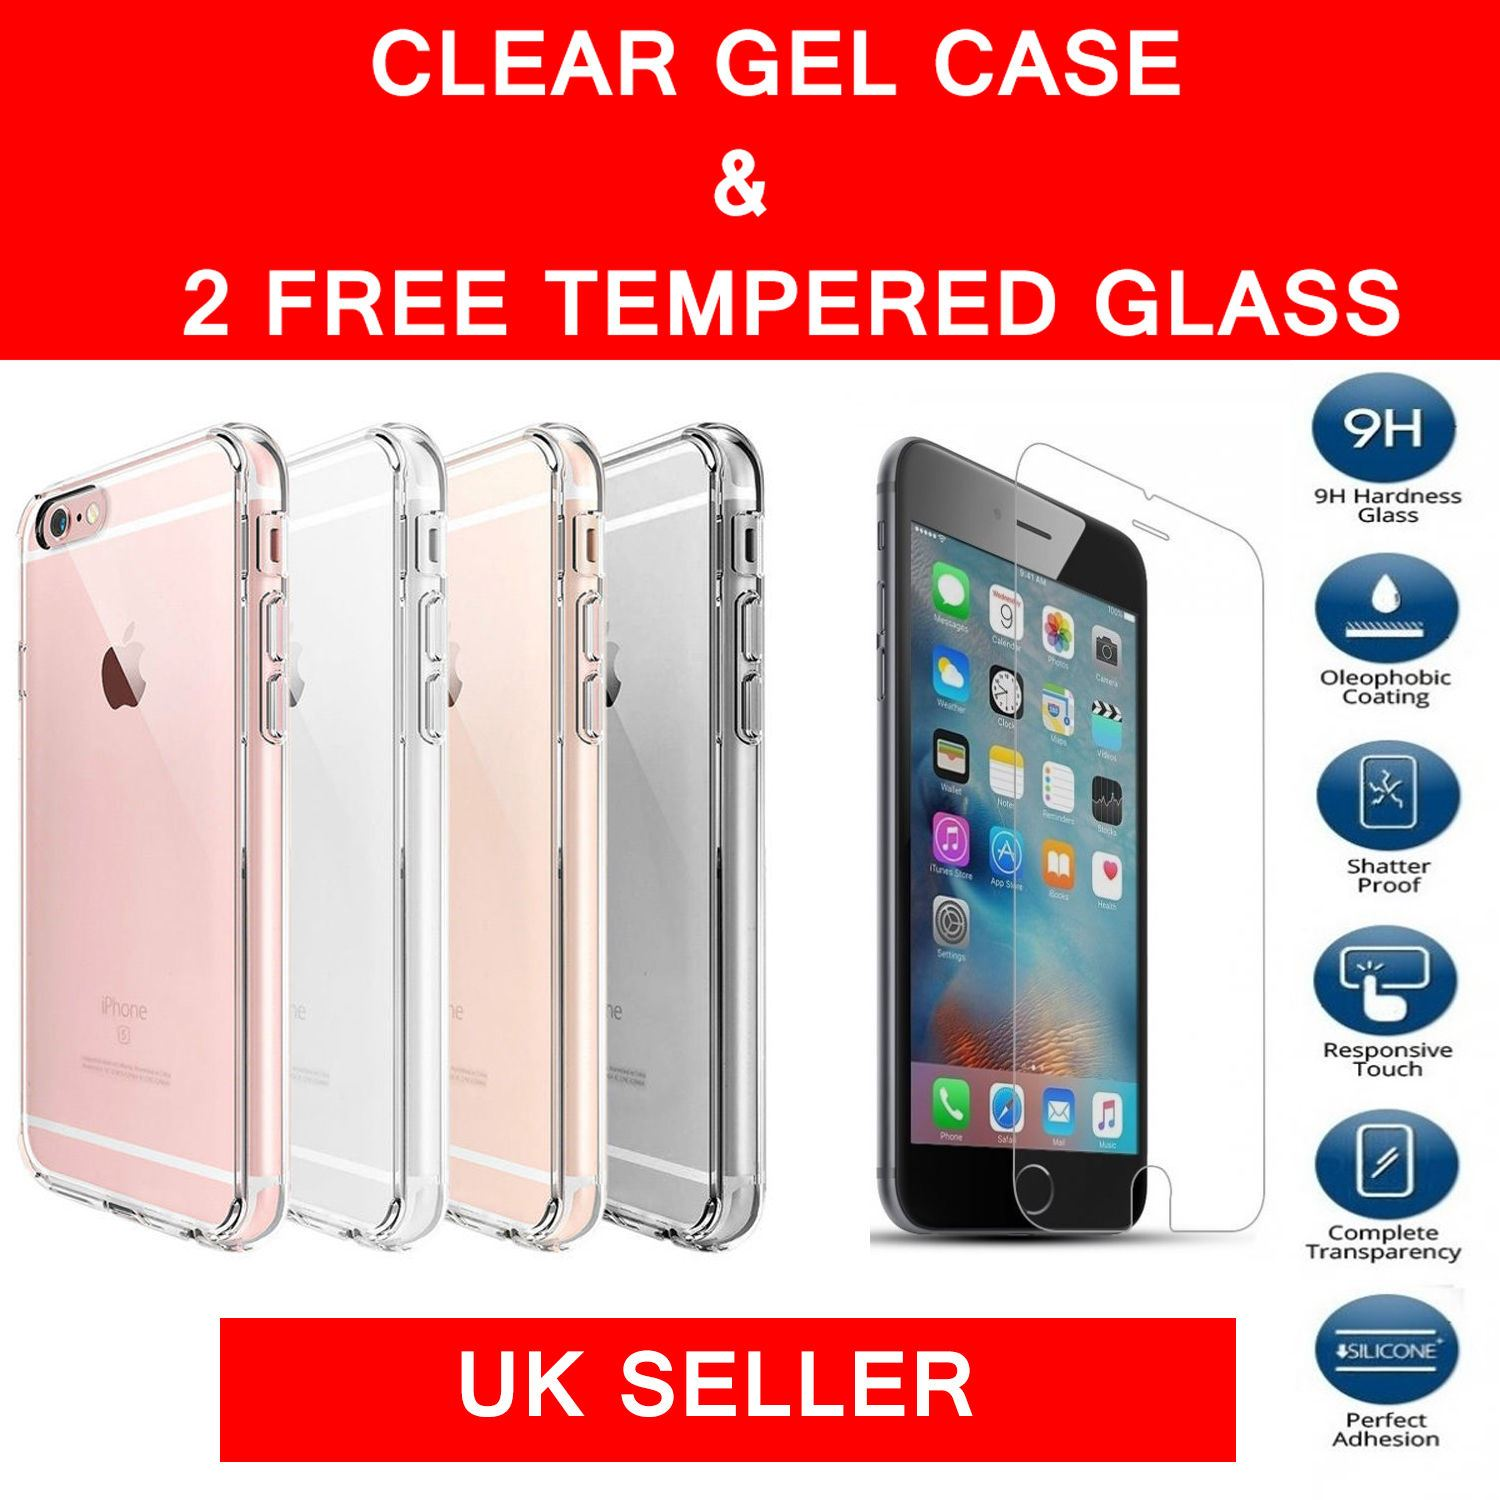 Clear Tpu Gel Case Tempered Glass Protector For Apple Iphone 5 5s Se 4g 4s 5c 6 6s Plus